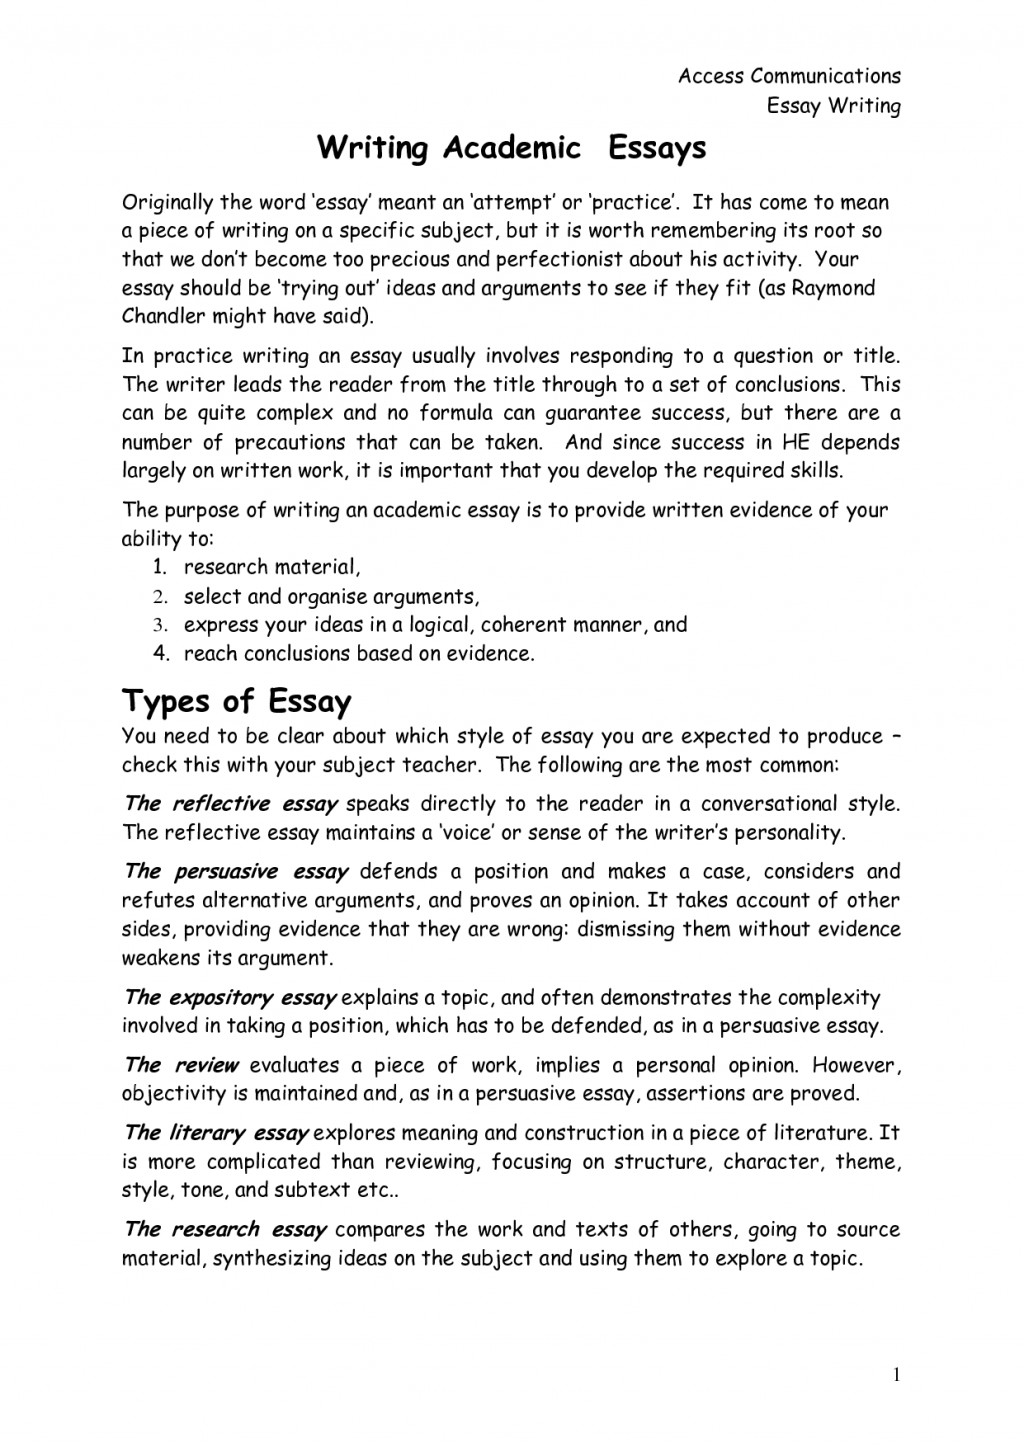 017 Essay Example Write For Me Amazing Uk My College Free Cheap Large